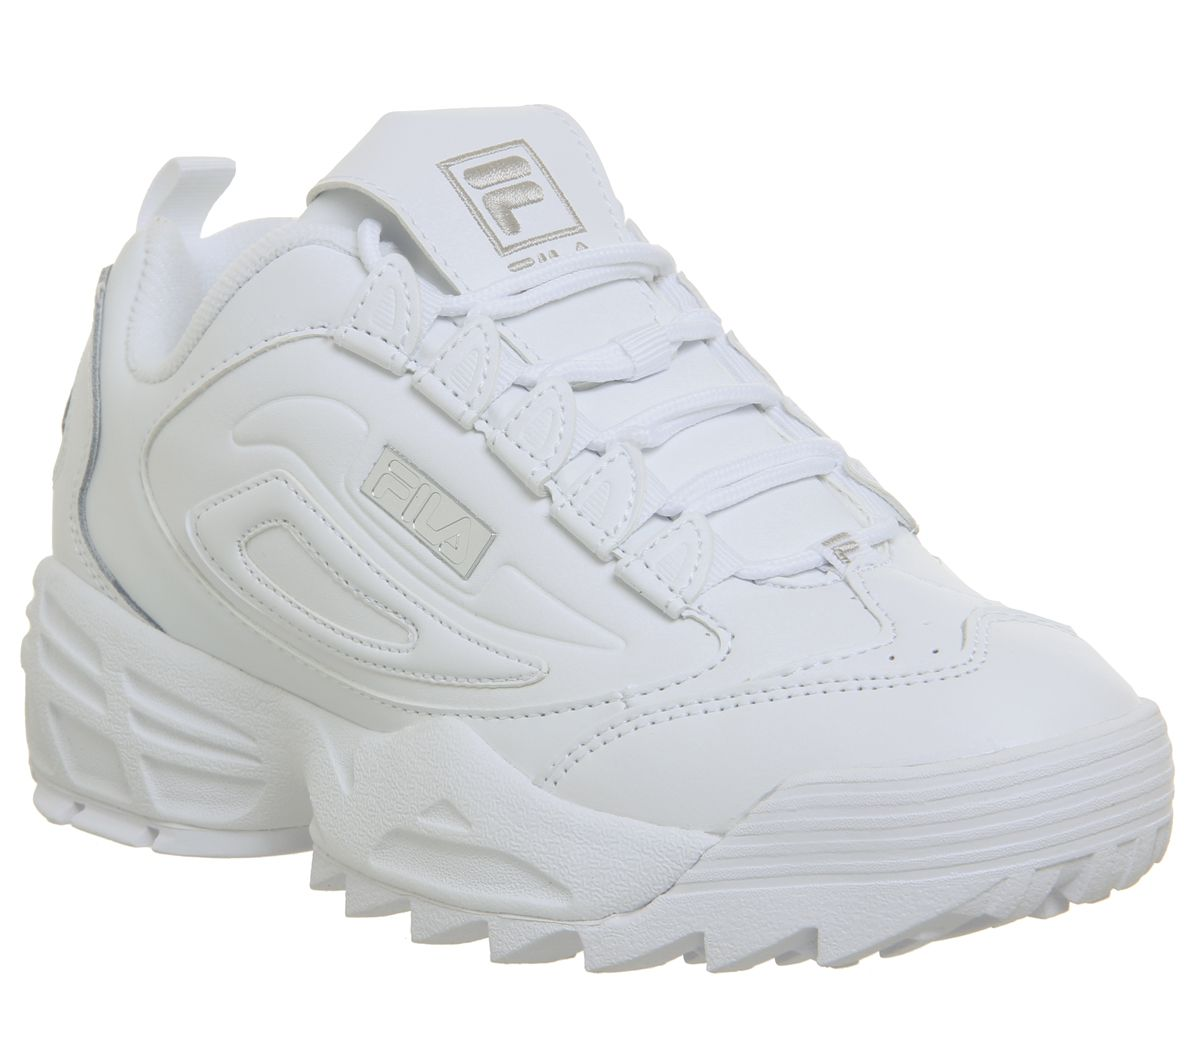 190064afb863 Fila Disruptor 3 Trainers White - Hers trainers